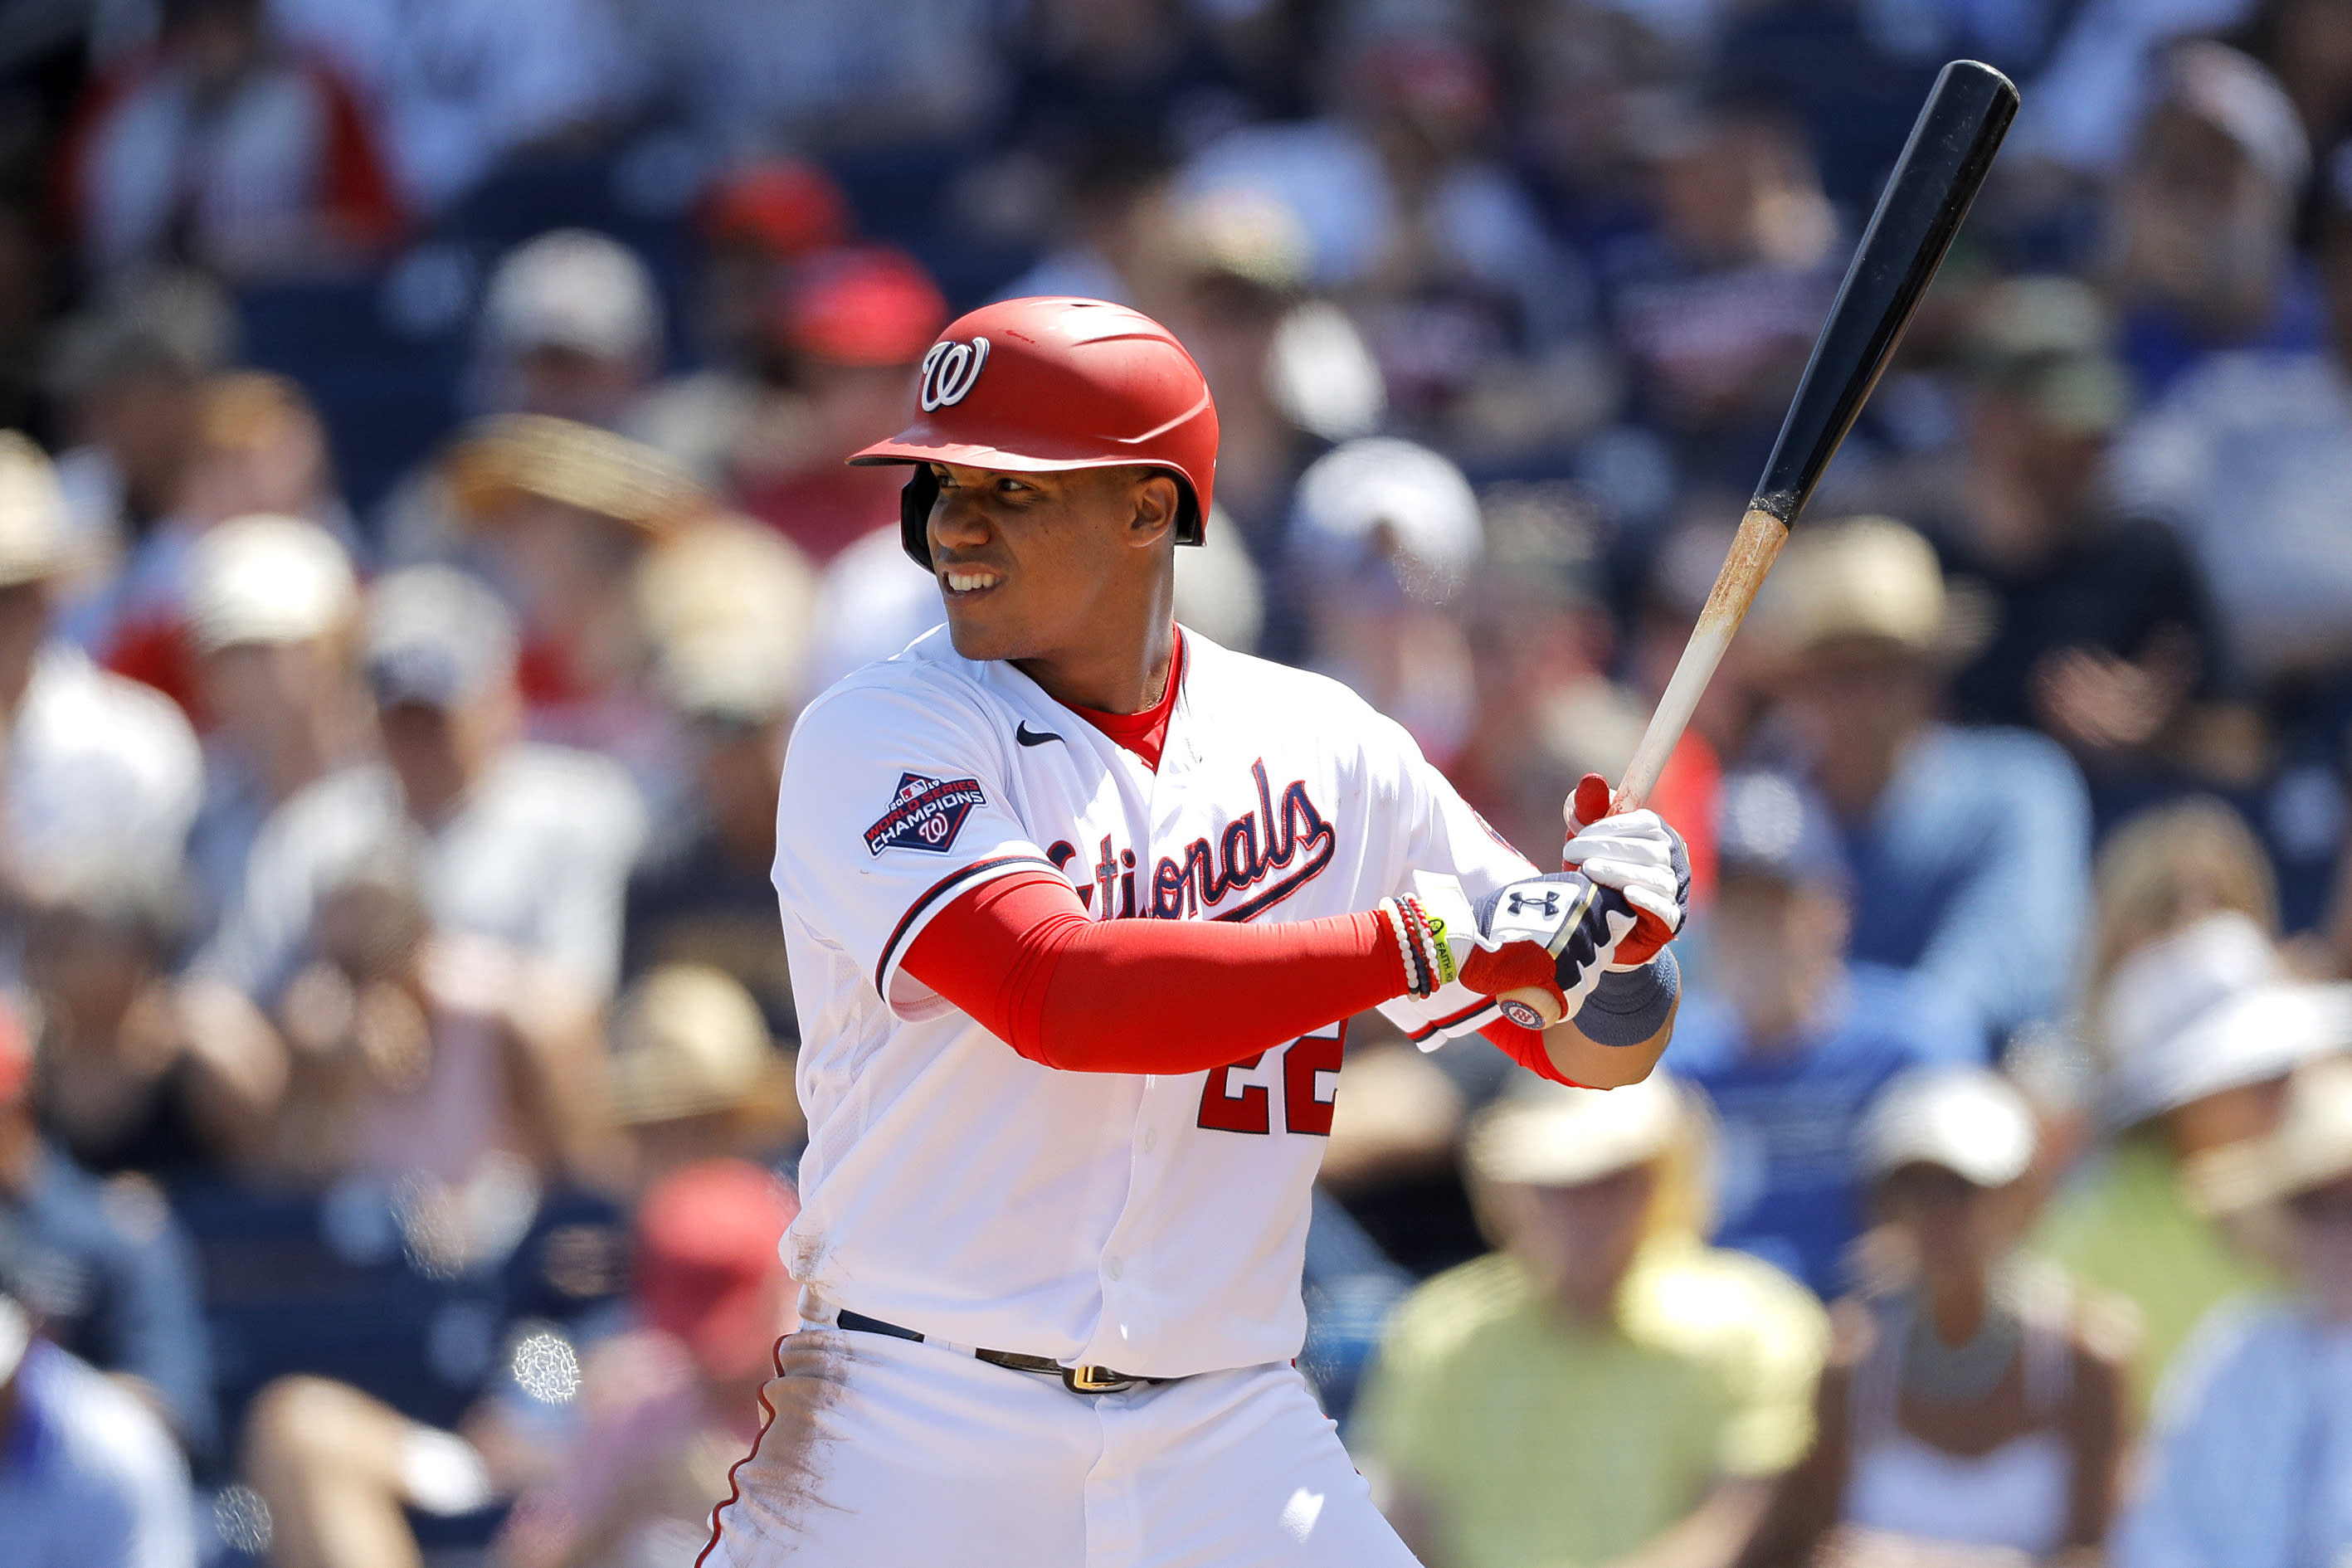 FILE - In this March 12, 2020, file photo, Washington Nationals' Juan Soto waits for a pitch from the New York Yankees during the fourth inning of a spring training baseball game, in West Palm Beach, Fla. Baseball begins Thursday, July 23, 2020, with the New York Yankees at Washington Nationals. Juan Soto and Washington open their title defense after winning the World Series for the first time in franchise history. Gerrit Cole is hoping to lead New York to its 28th championship after the ace right-hander signed a blockbuster deal with the Yankees in free agency. (AP Photo/Julio Cortez, File)